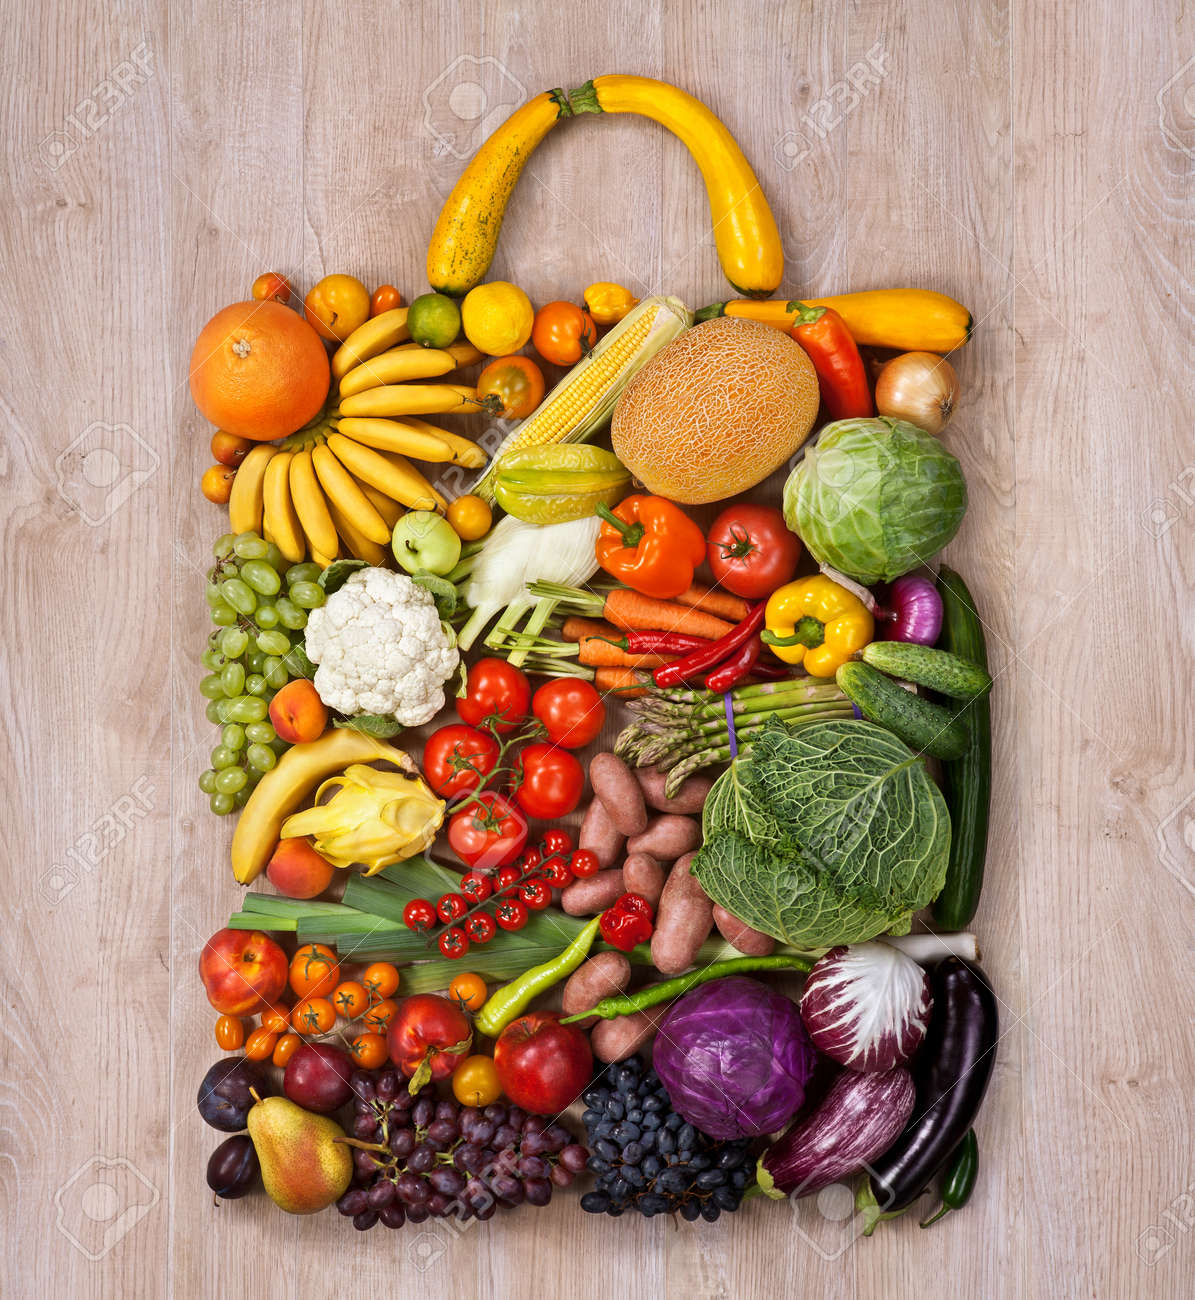 Healthy Food Shopping Food Photography Of Designer Handbag Stock Photo Picture And Royalty Free Image Image 30548430